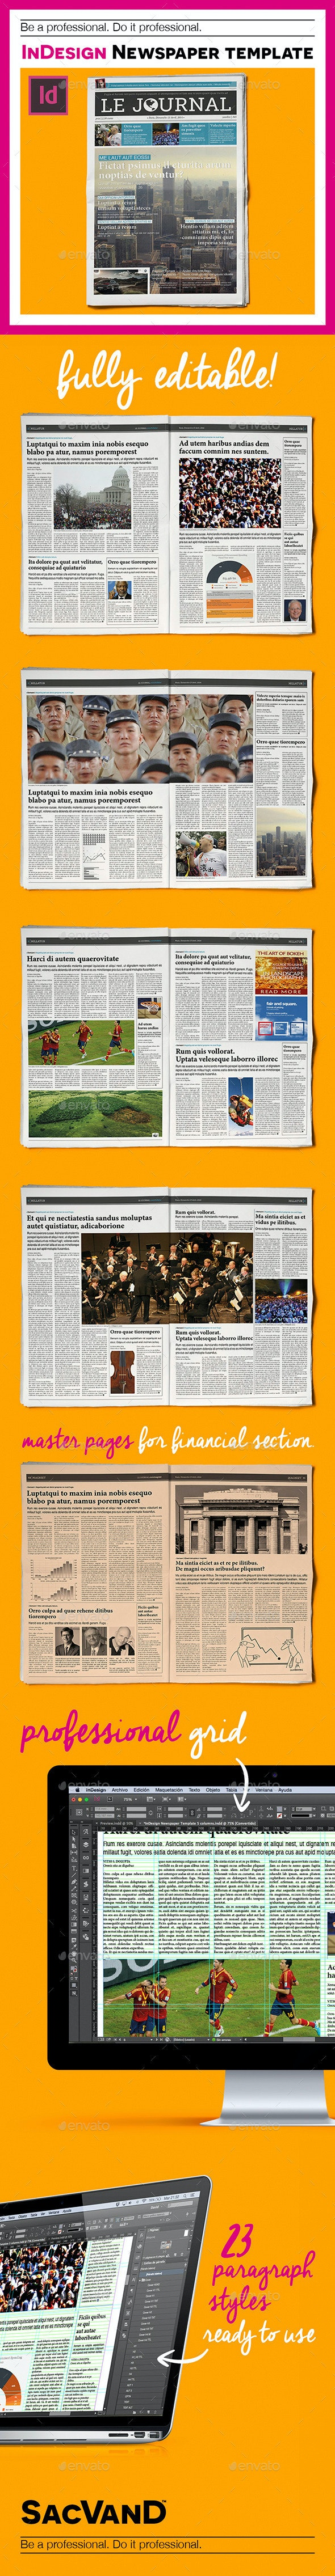 InDesign Newspaper Template 5 Columns - Newsletters Print Templates